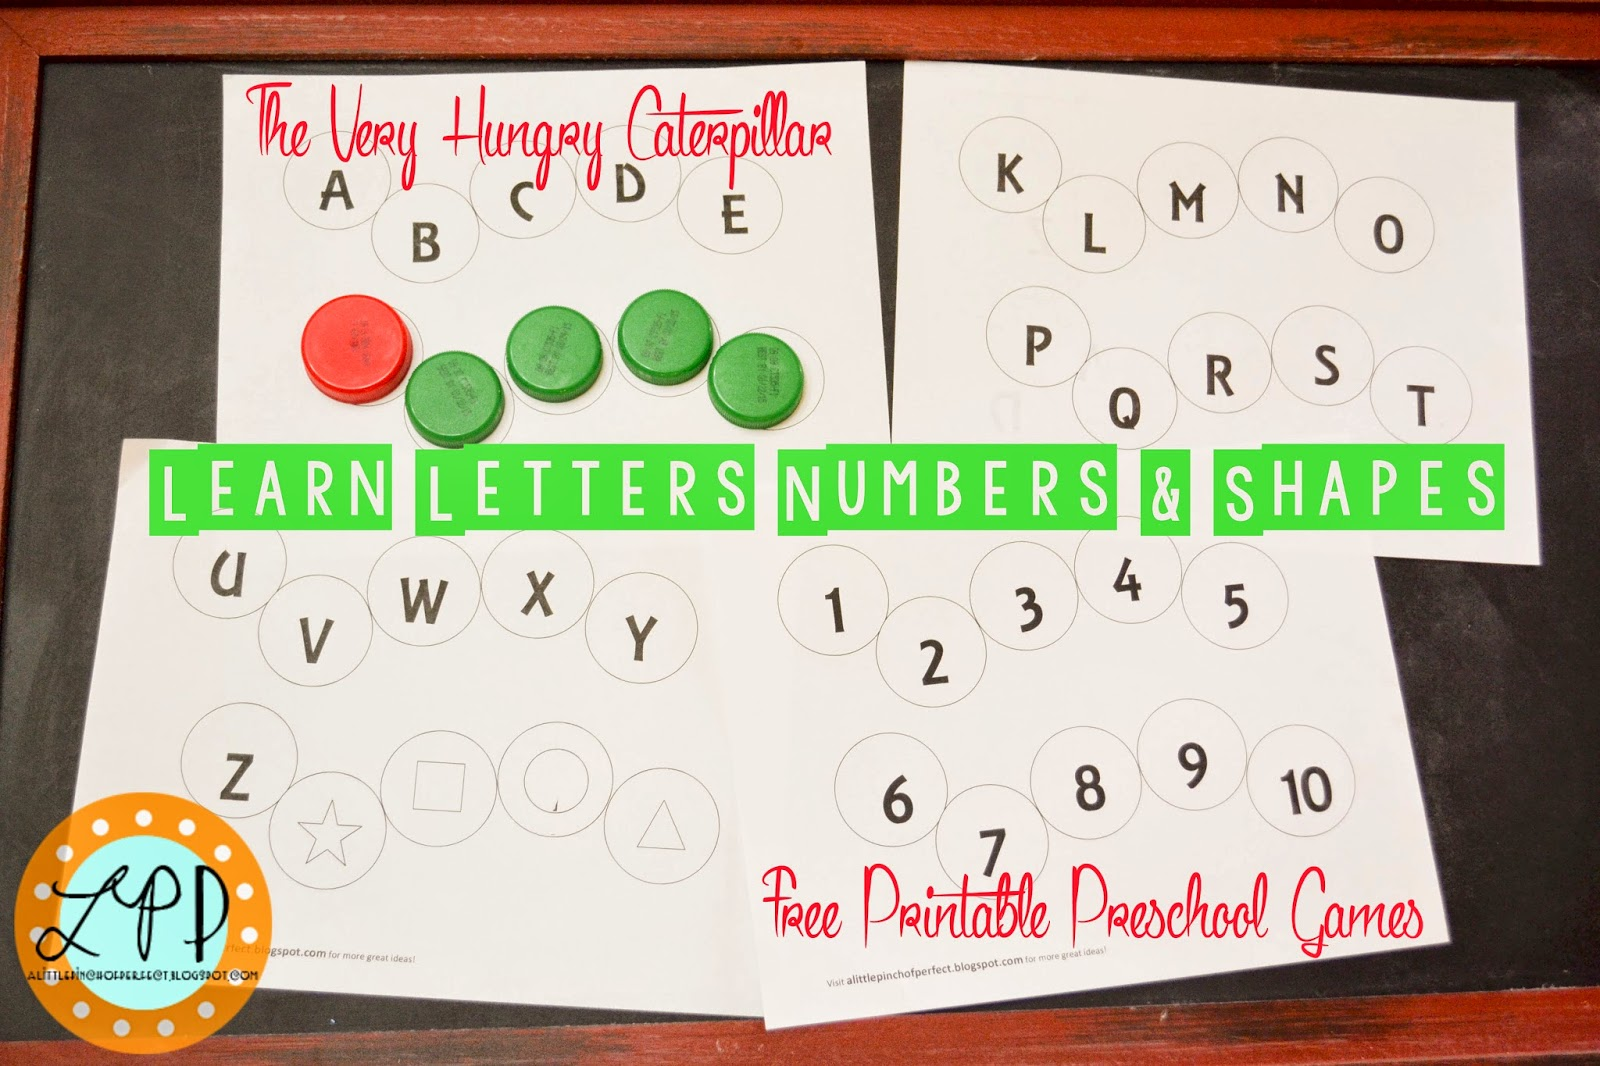 The Very Hungry Caterpillar Preschool Games Letters